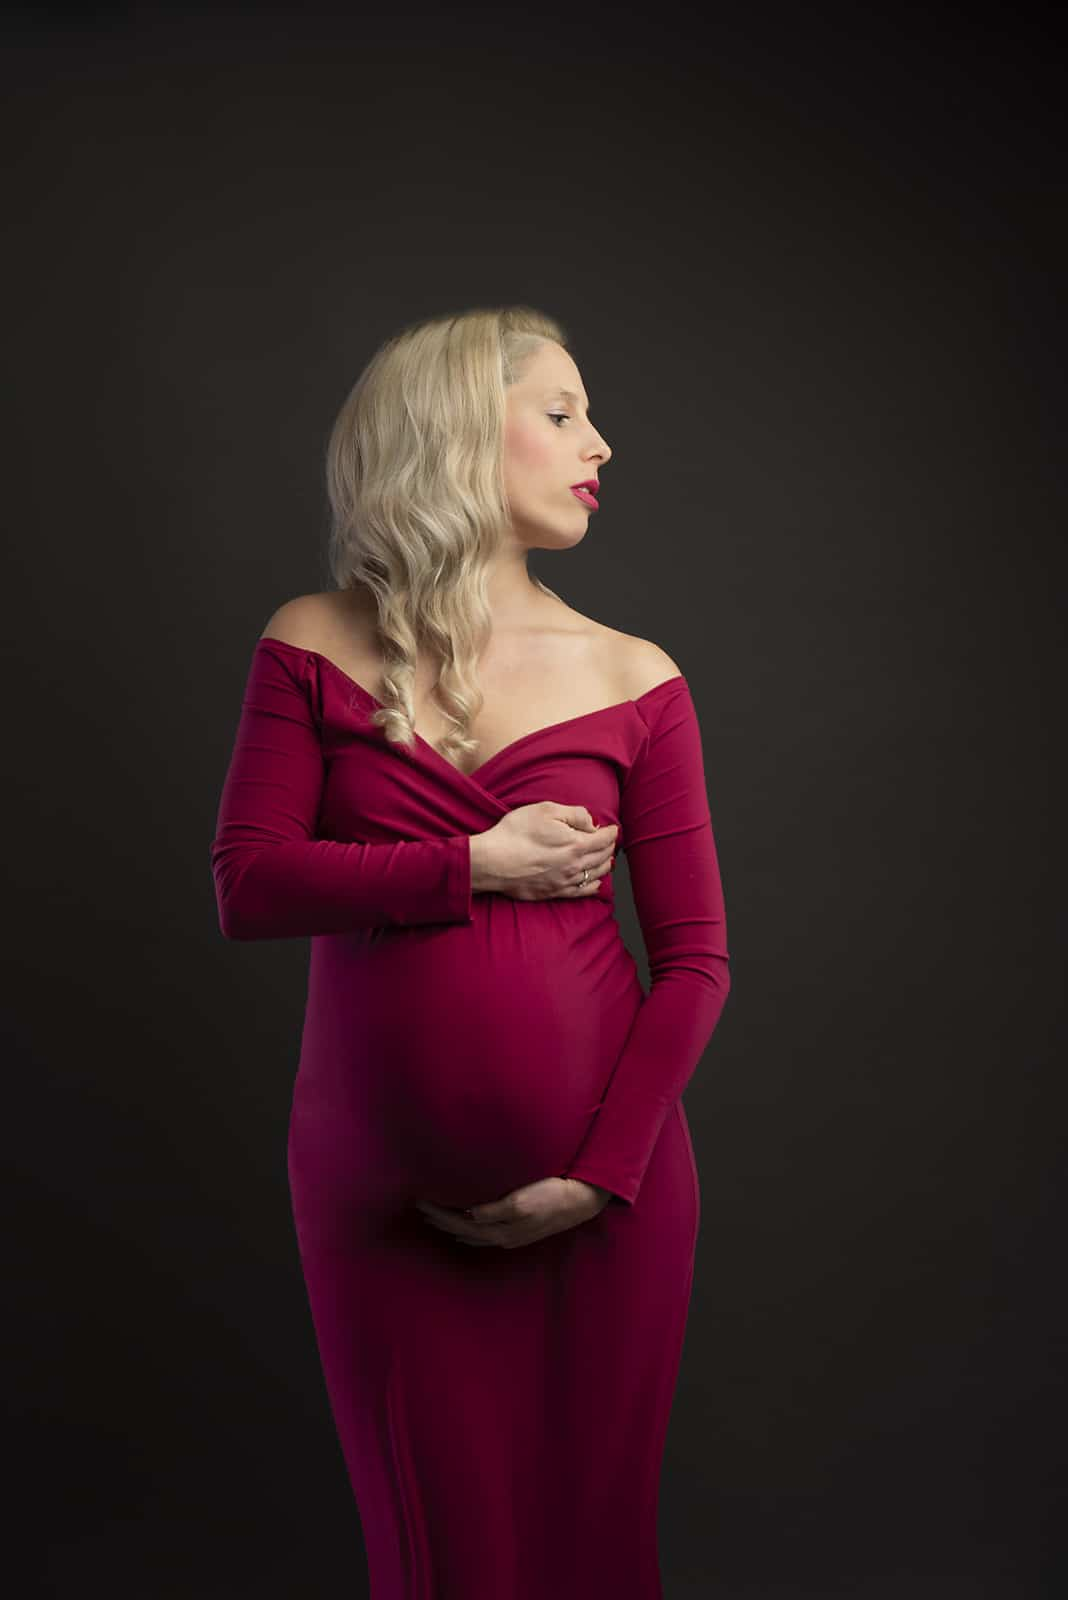 pregnancy photo taken by maternity photographer manchester